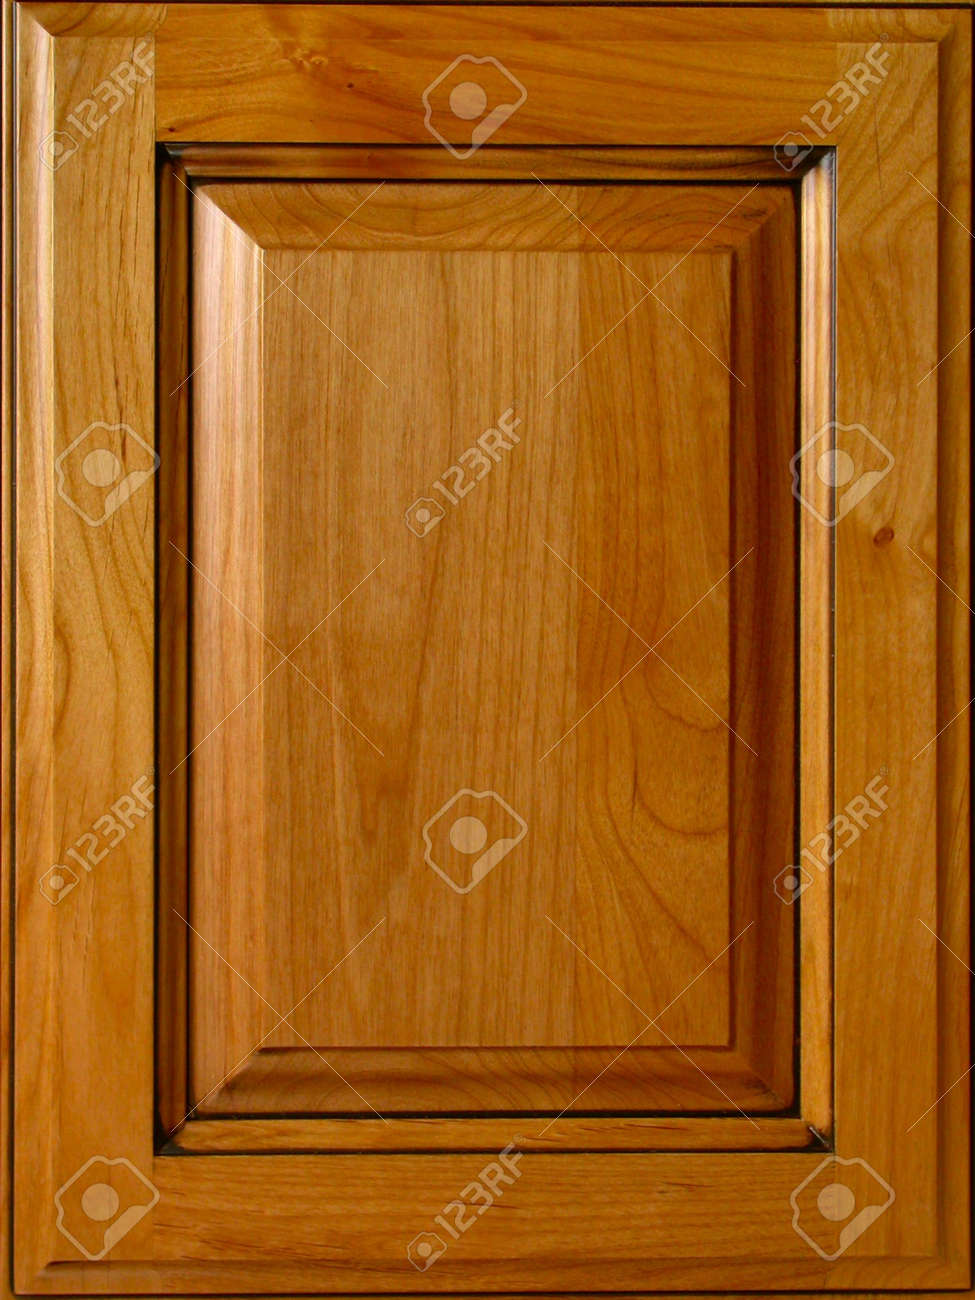 Cherry Cabinet Door Stock Photo, Picture And Royalty Free Image ...